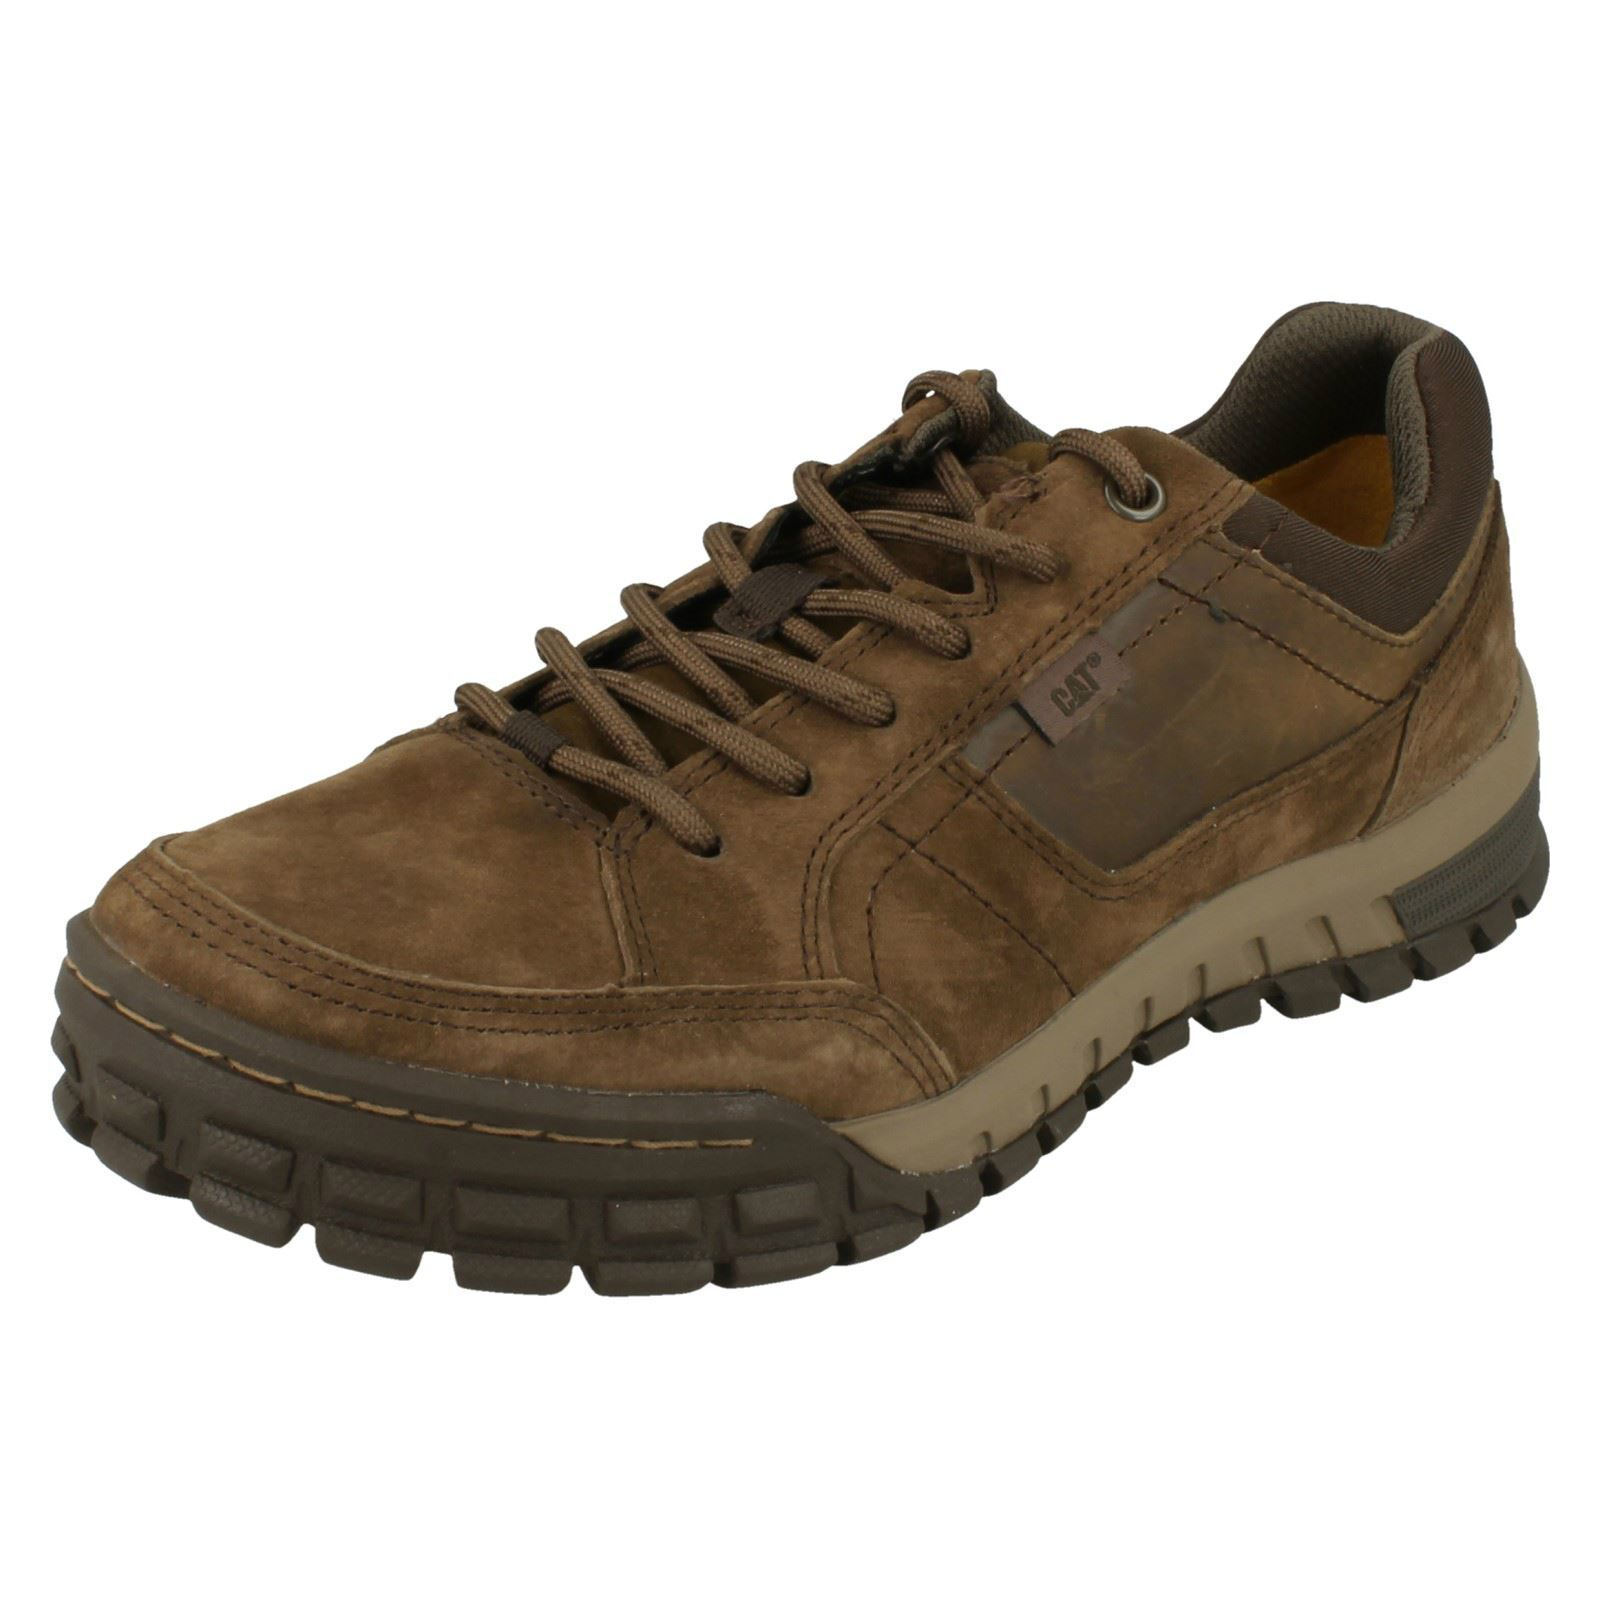 Mens Caterpillar Walking shoes 'Sentinel'